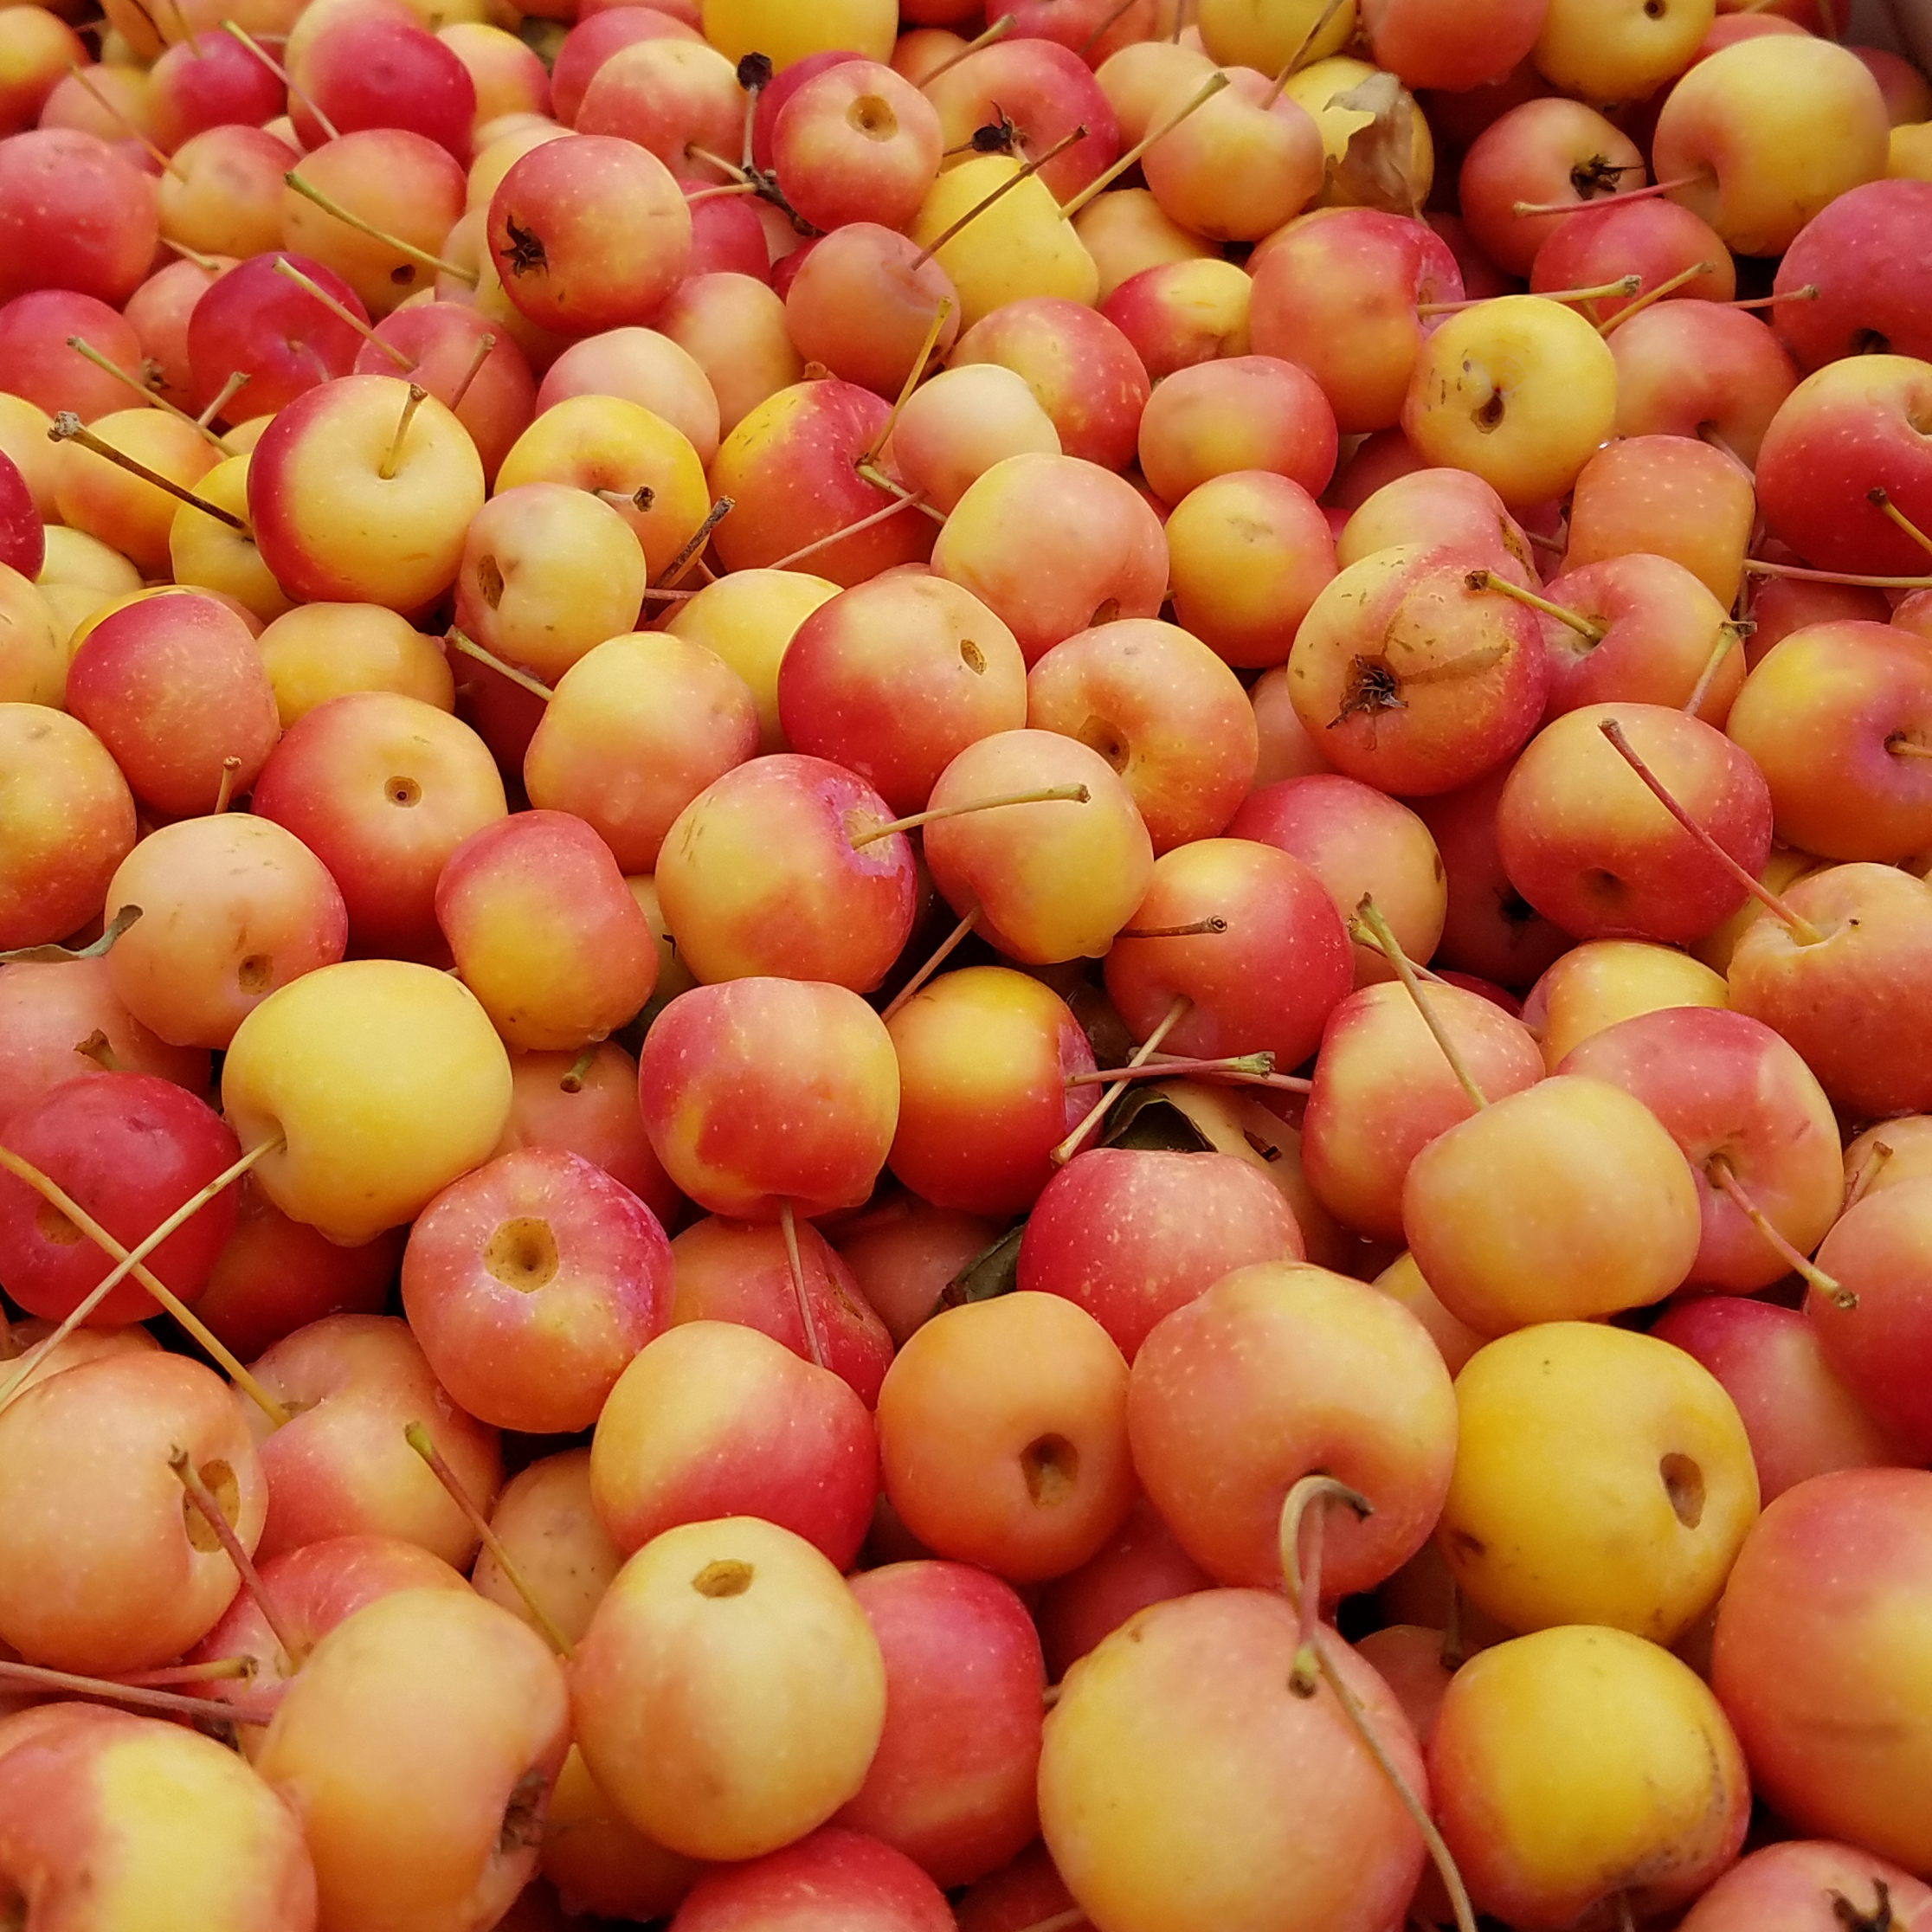 Snowdrift Crab - A bittersharp crab apple high in acid and tannins, it is most commonly used as a pollinator for dessert apples. This apple is the smallest and has the highest sugar content of all our varieties. It is excellent for blending.